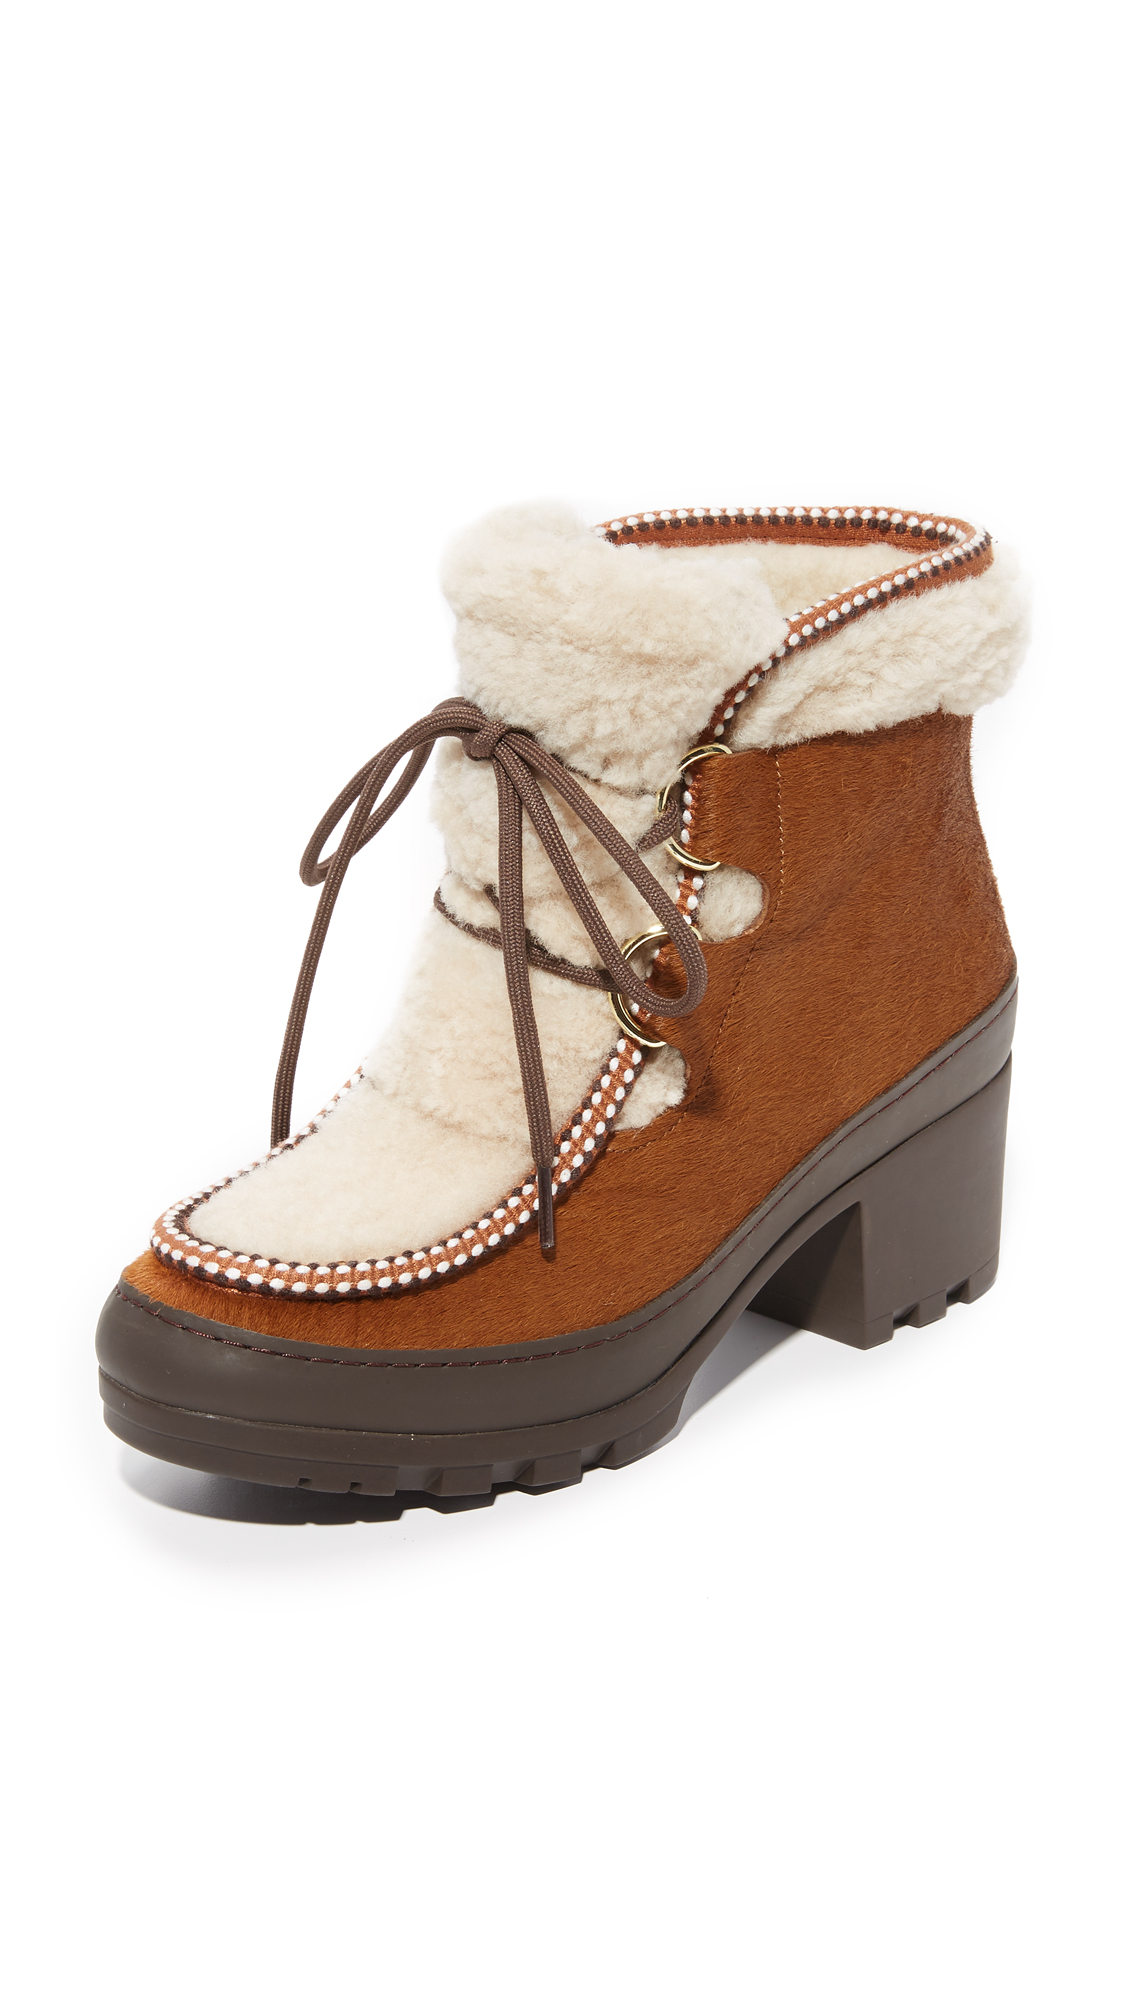 Tory Burch Berkley Shearling Booties - Derby Brown/Natural